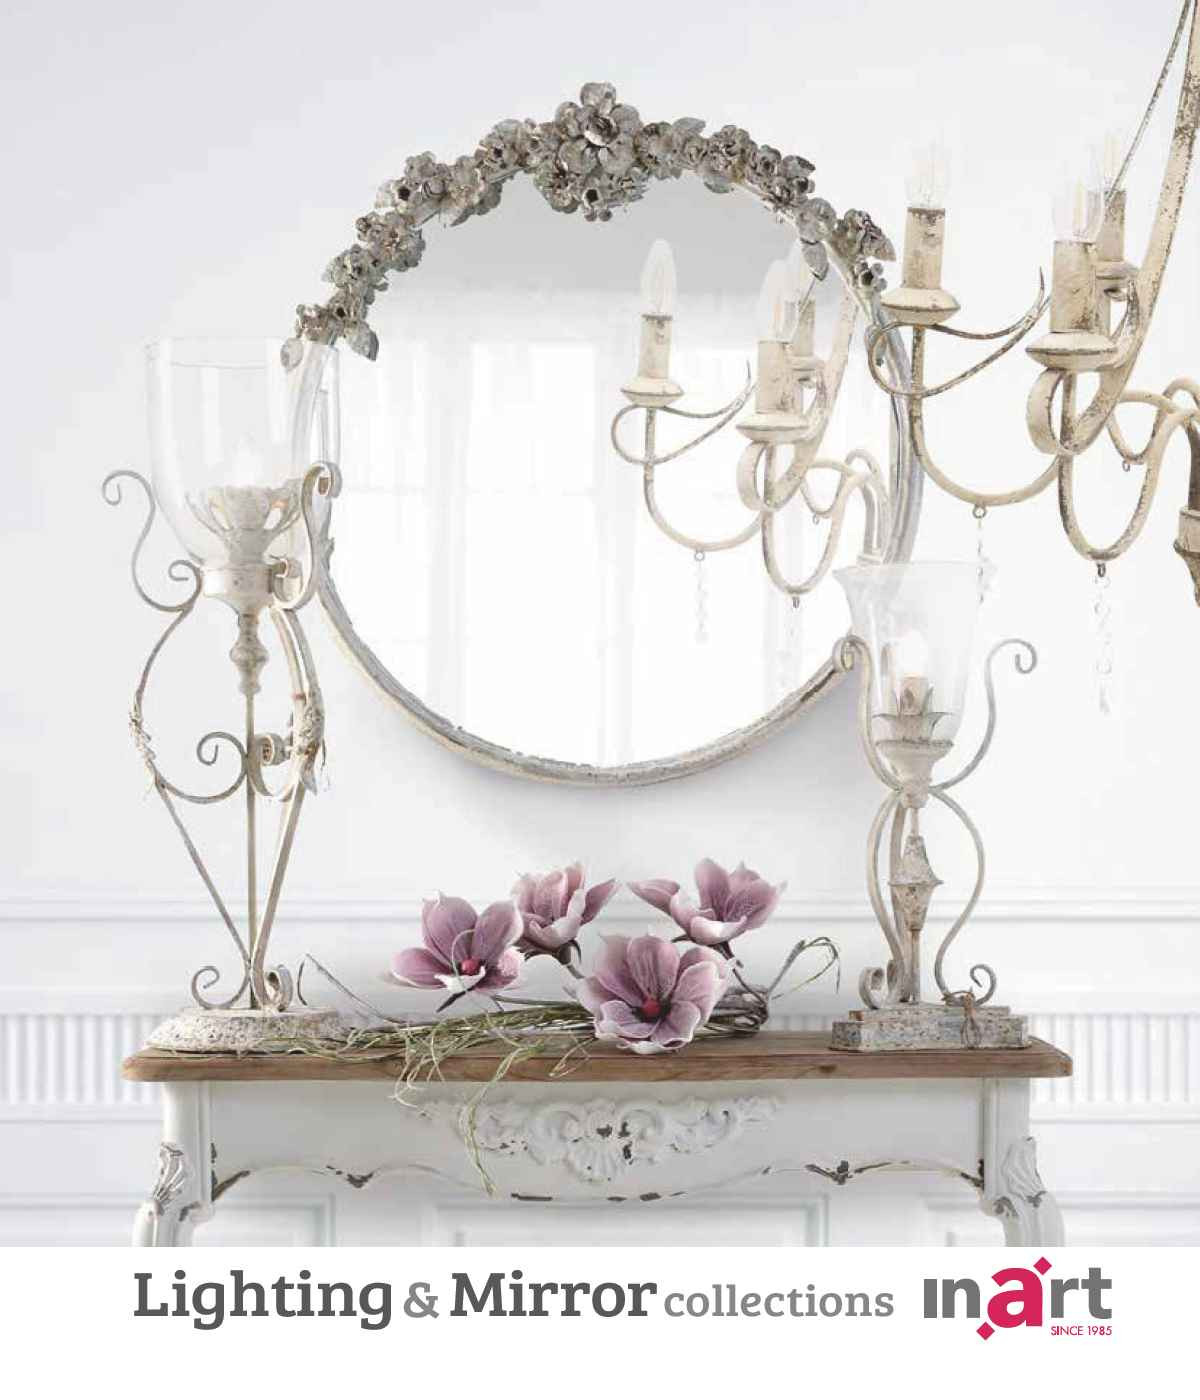 Lighting & Mirrors Collection